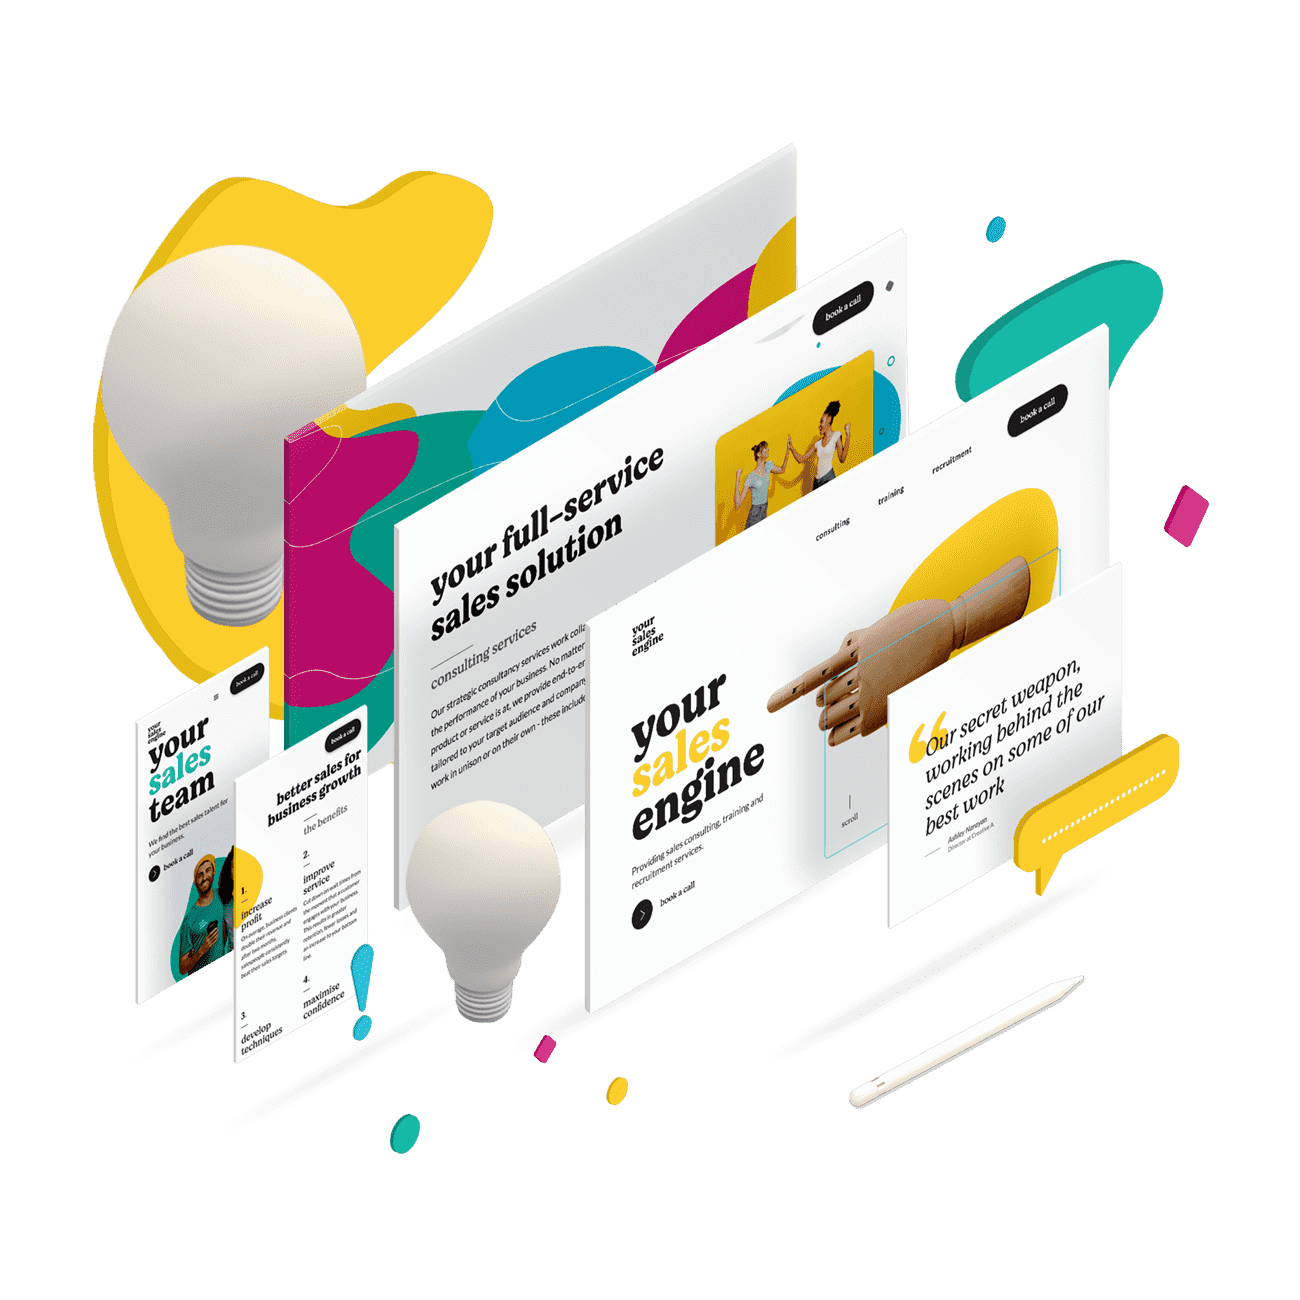 User interface designs for Your Sales Engine website